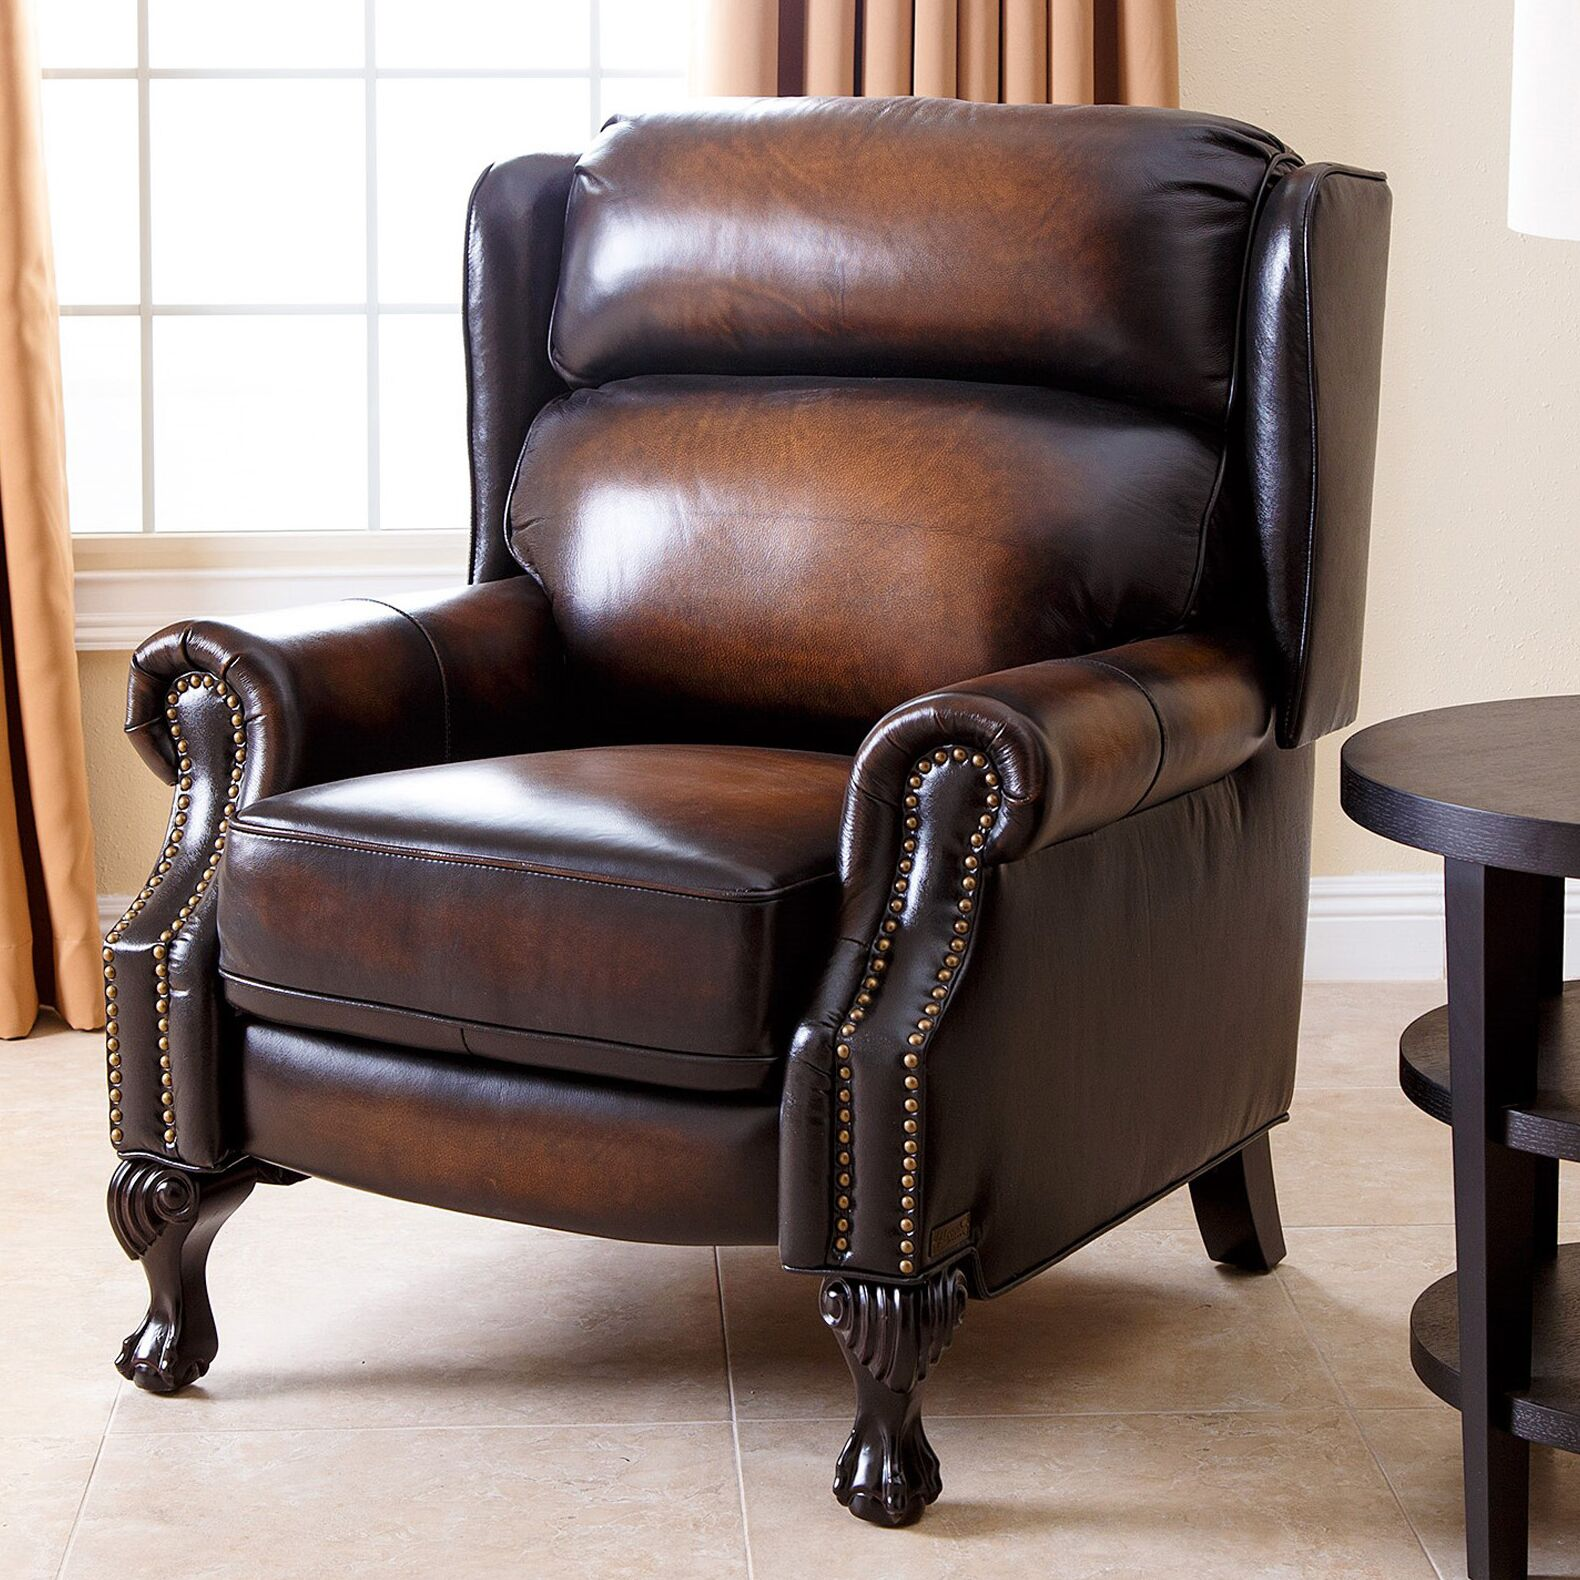 Shubrick Leather Manual Recliner